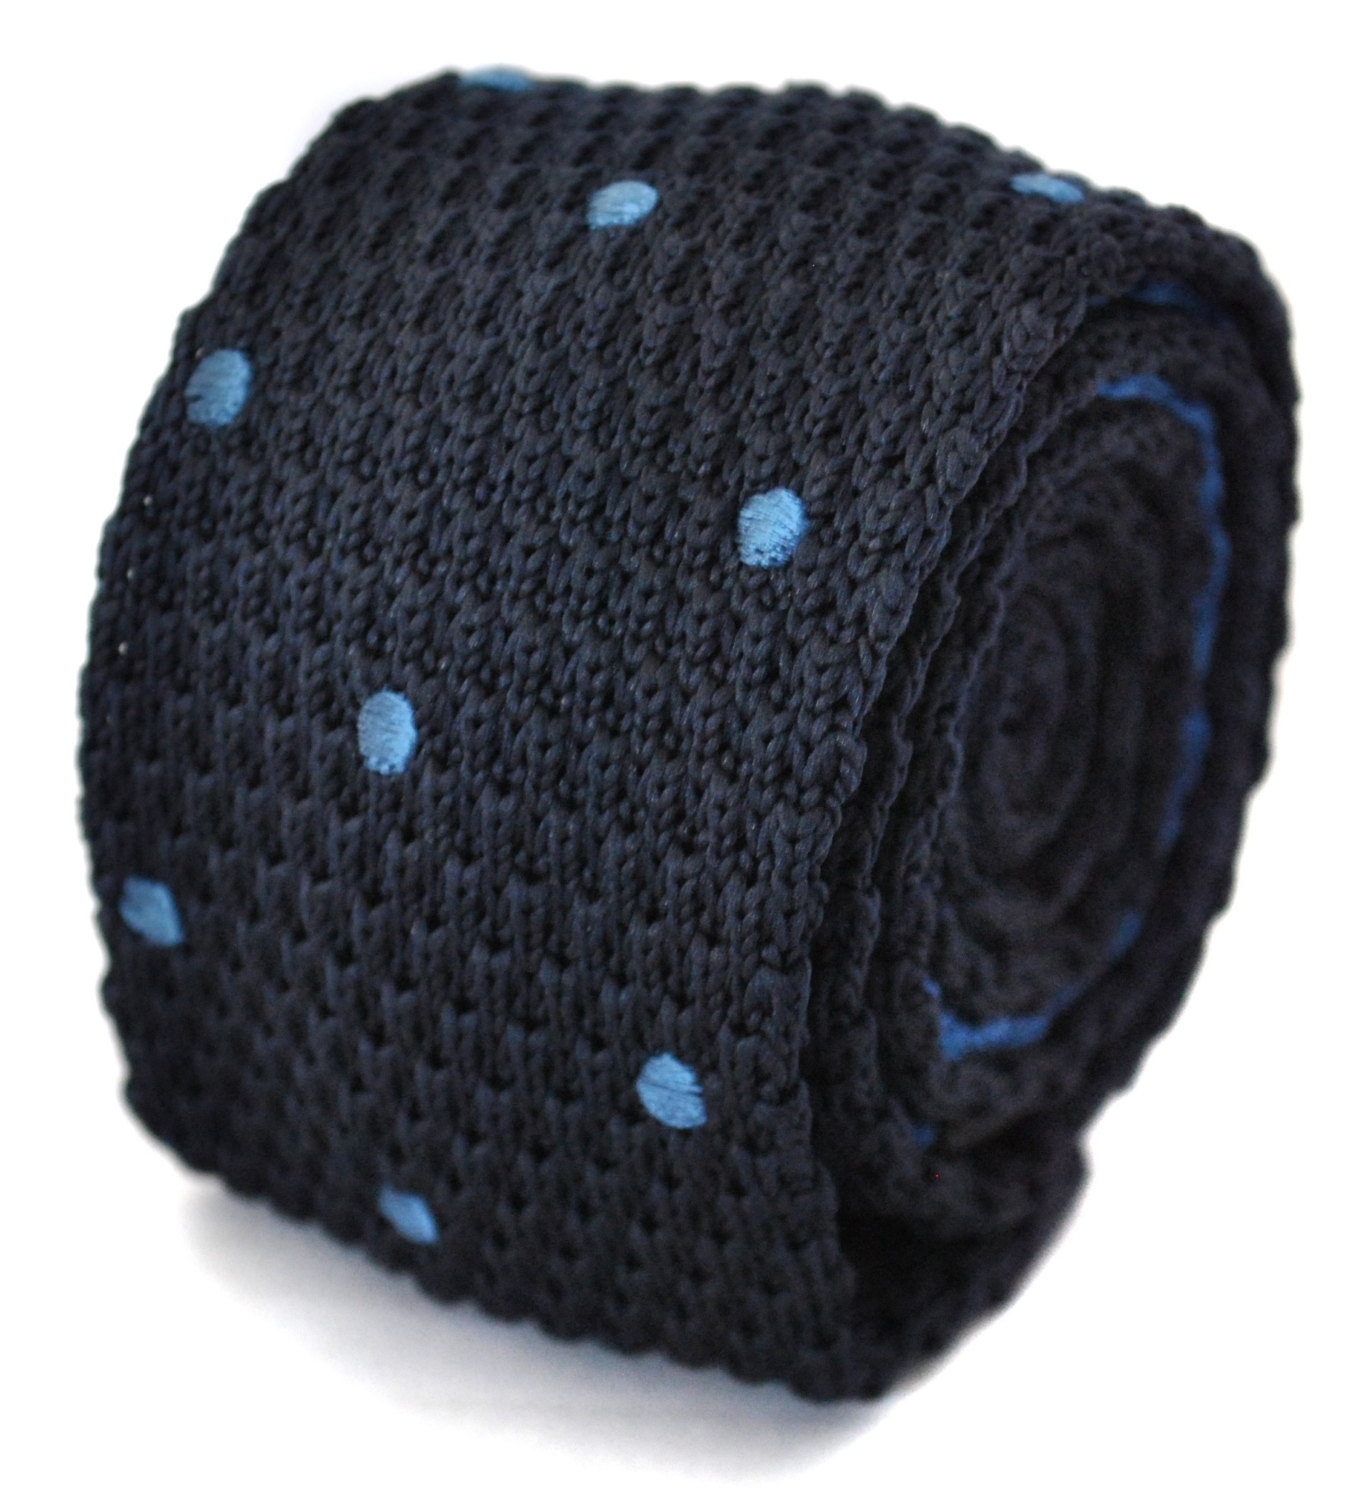 knitted navy and blue spotted skinny tie by Frederick Thomas FT1184